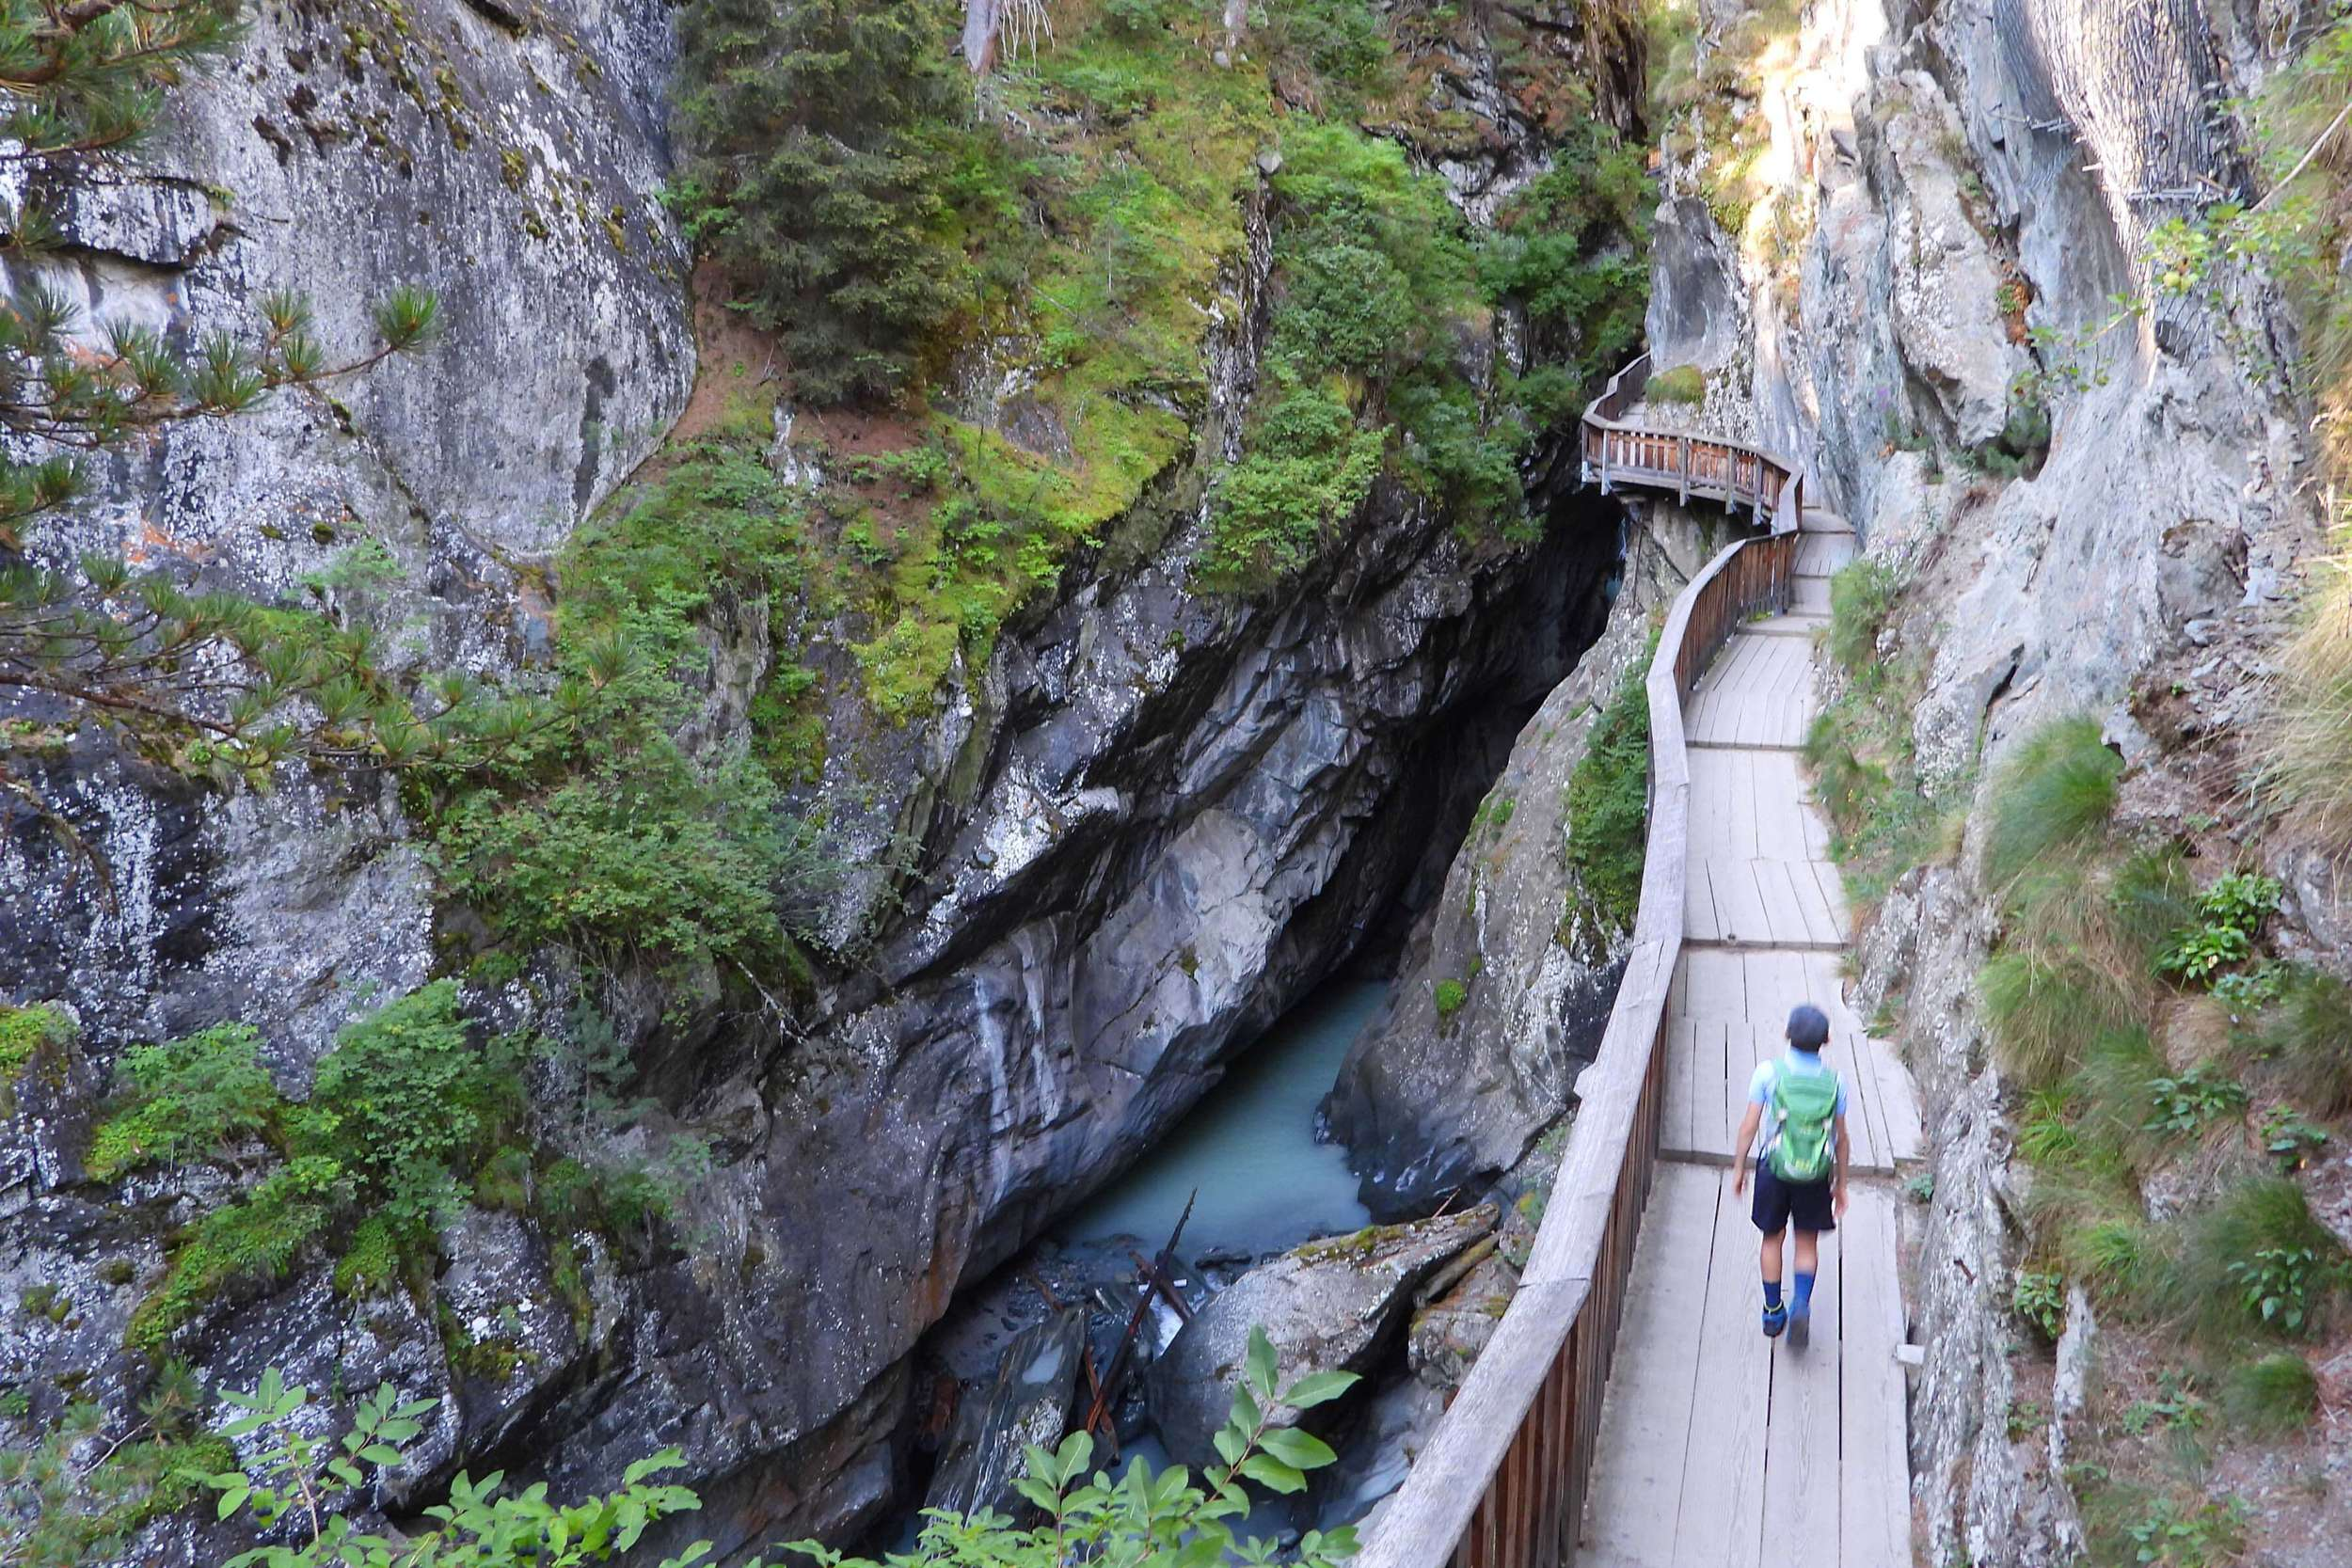 Gorner Gorge is one of the nicest places to see in Zermatt